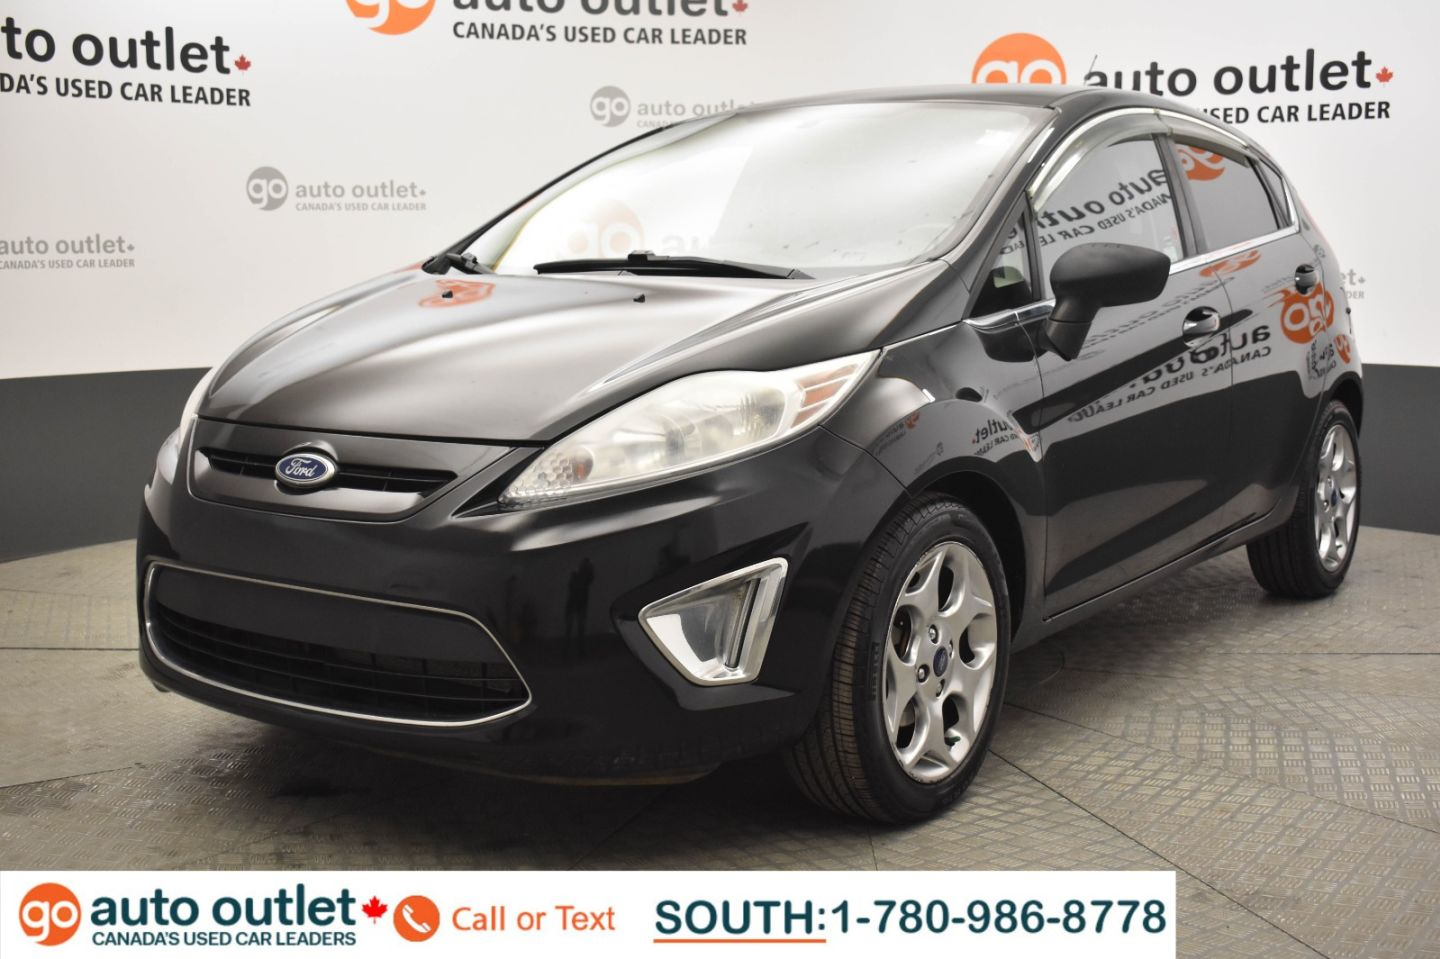 2013 Ford Fiesta Titanium for sale in Leduc, Alberta